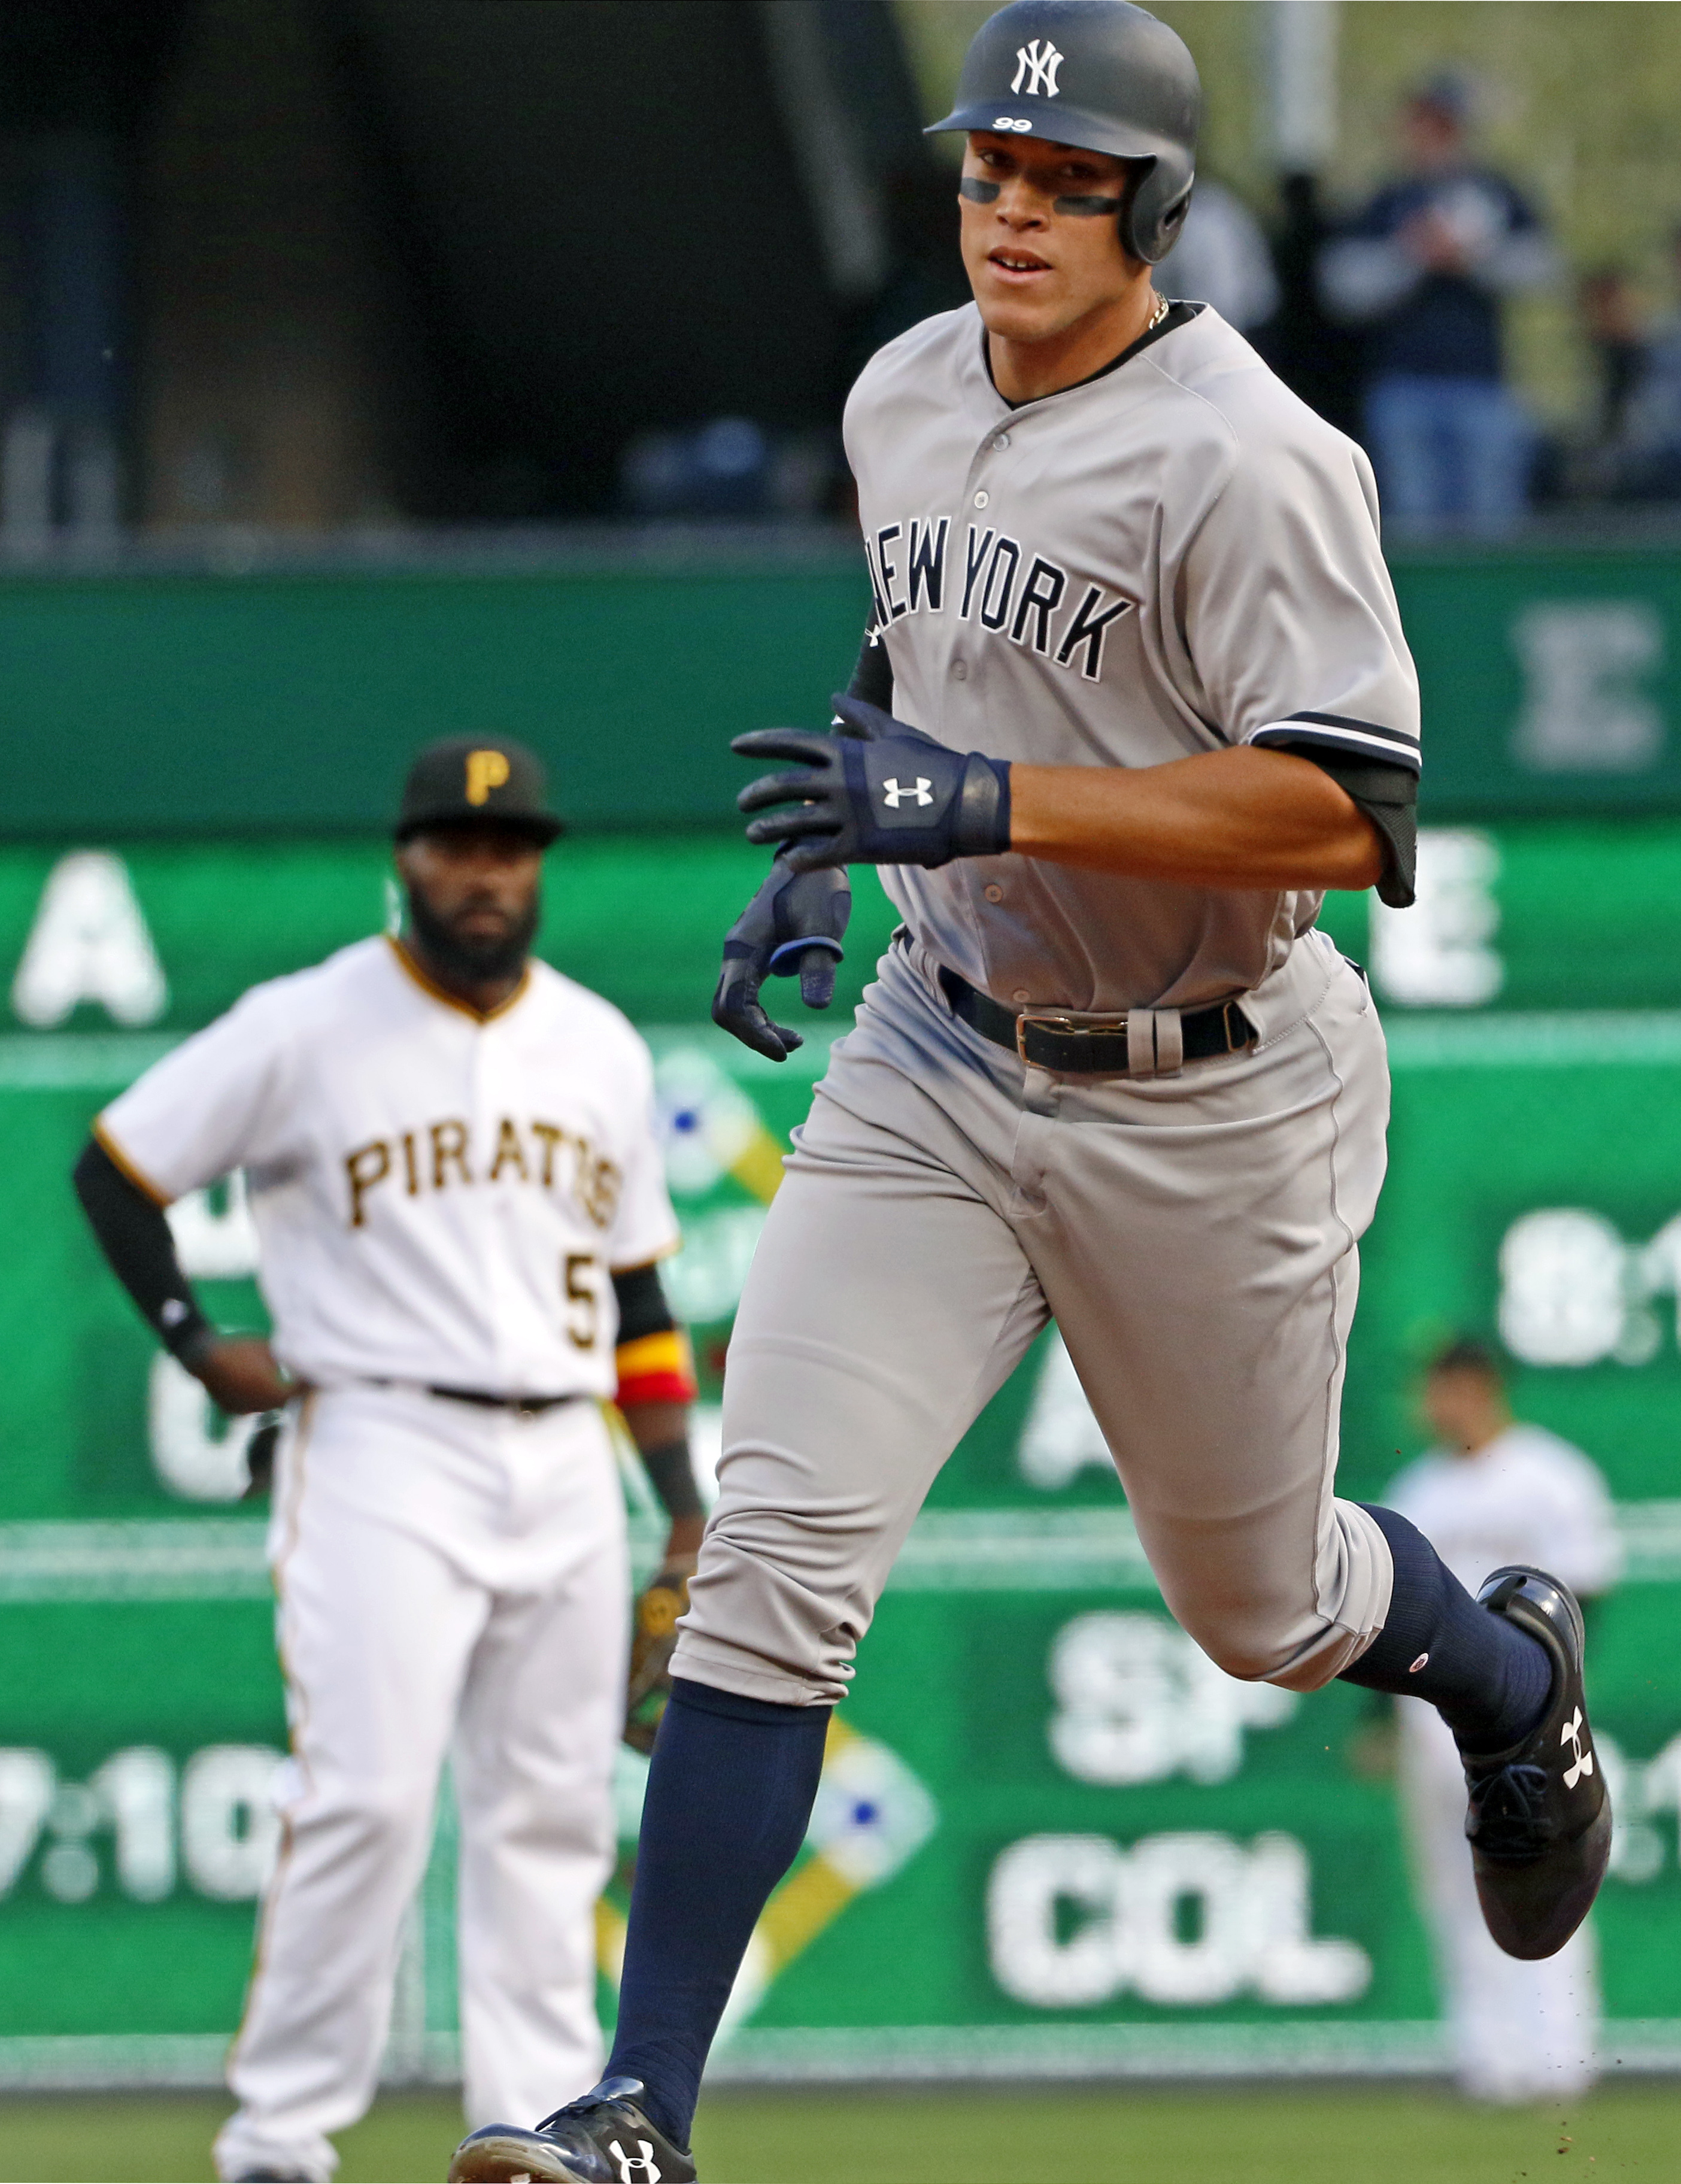 "<div class=""meta image-caption""><div class=""origin-logo origin-image ap""><span>AP</span></div><span class=""caption-text"">New York Yankees' Aaron Judge rounds second past after hitting a 460 foot home run off in Pittsburgh, Saturday, April 22, 2017. (Gene J. Puskar)</span></div>"